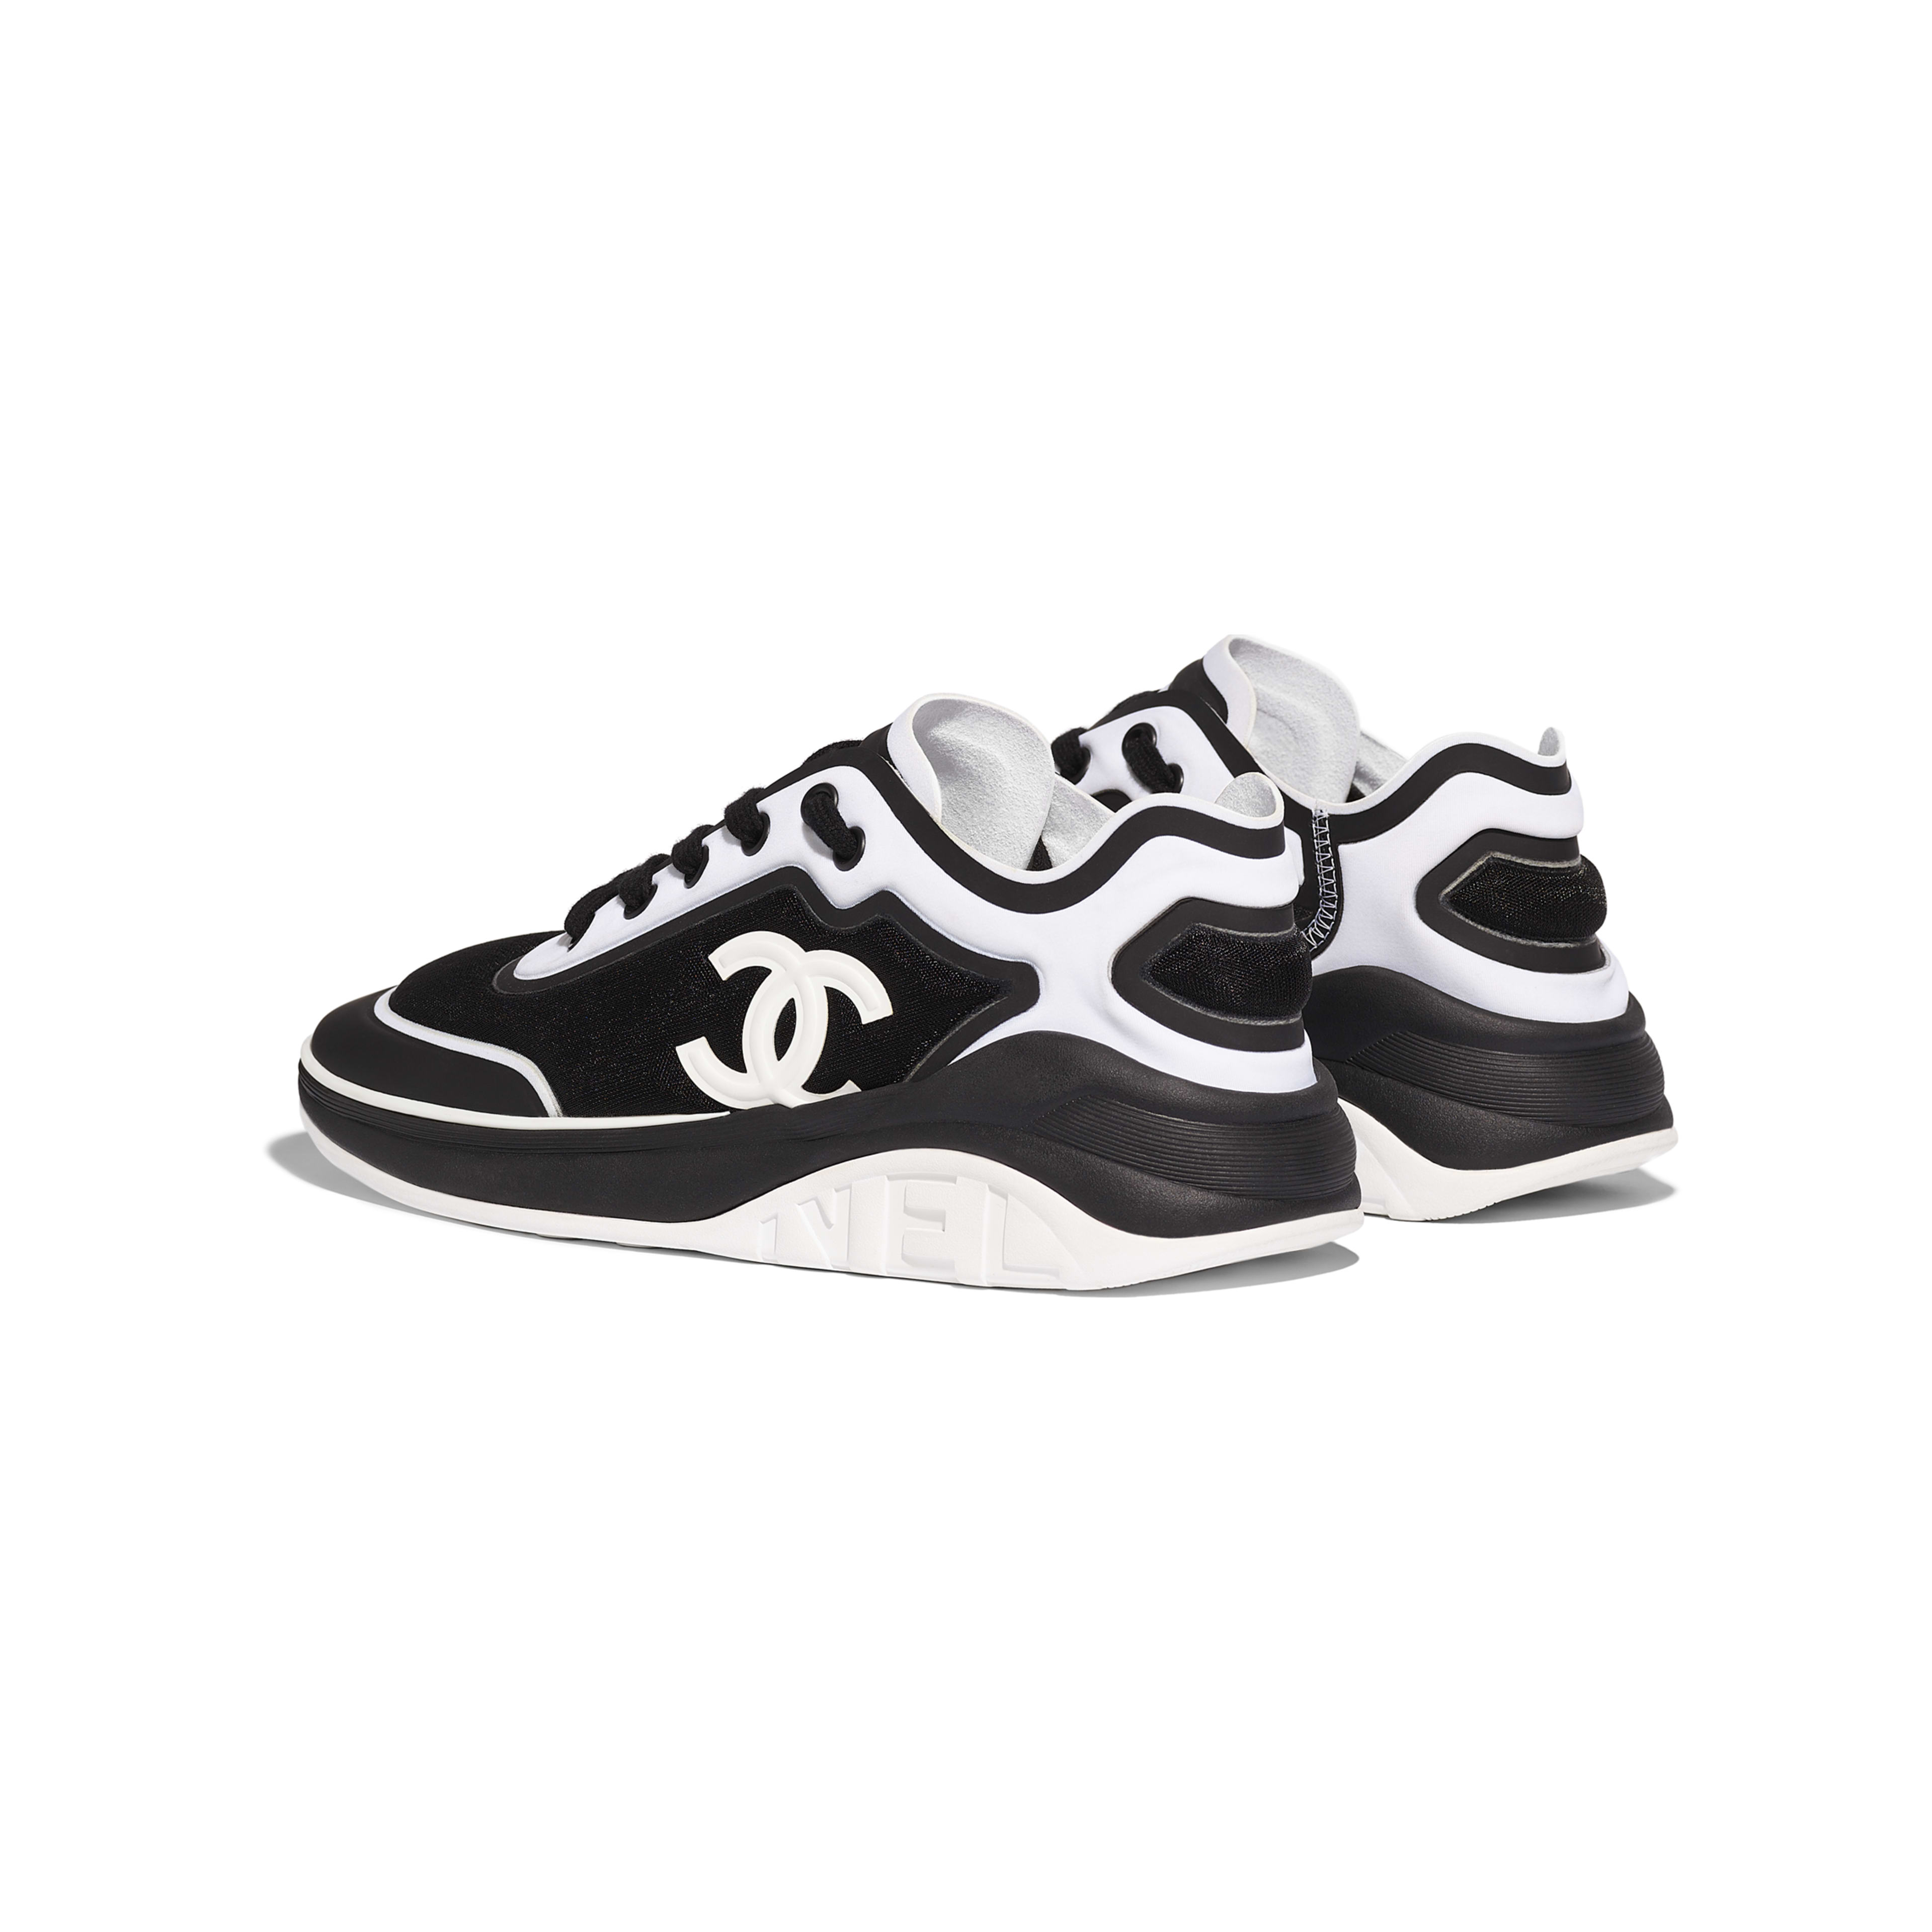 Sneakers - Black & White - Mesh & Lycra - Other view - see full sized version